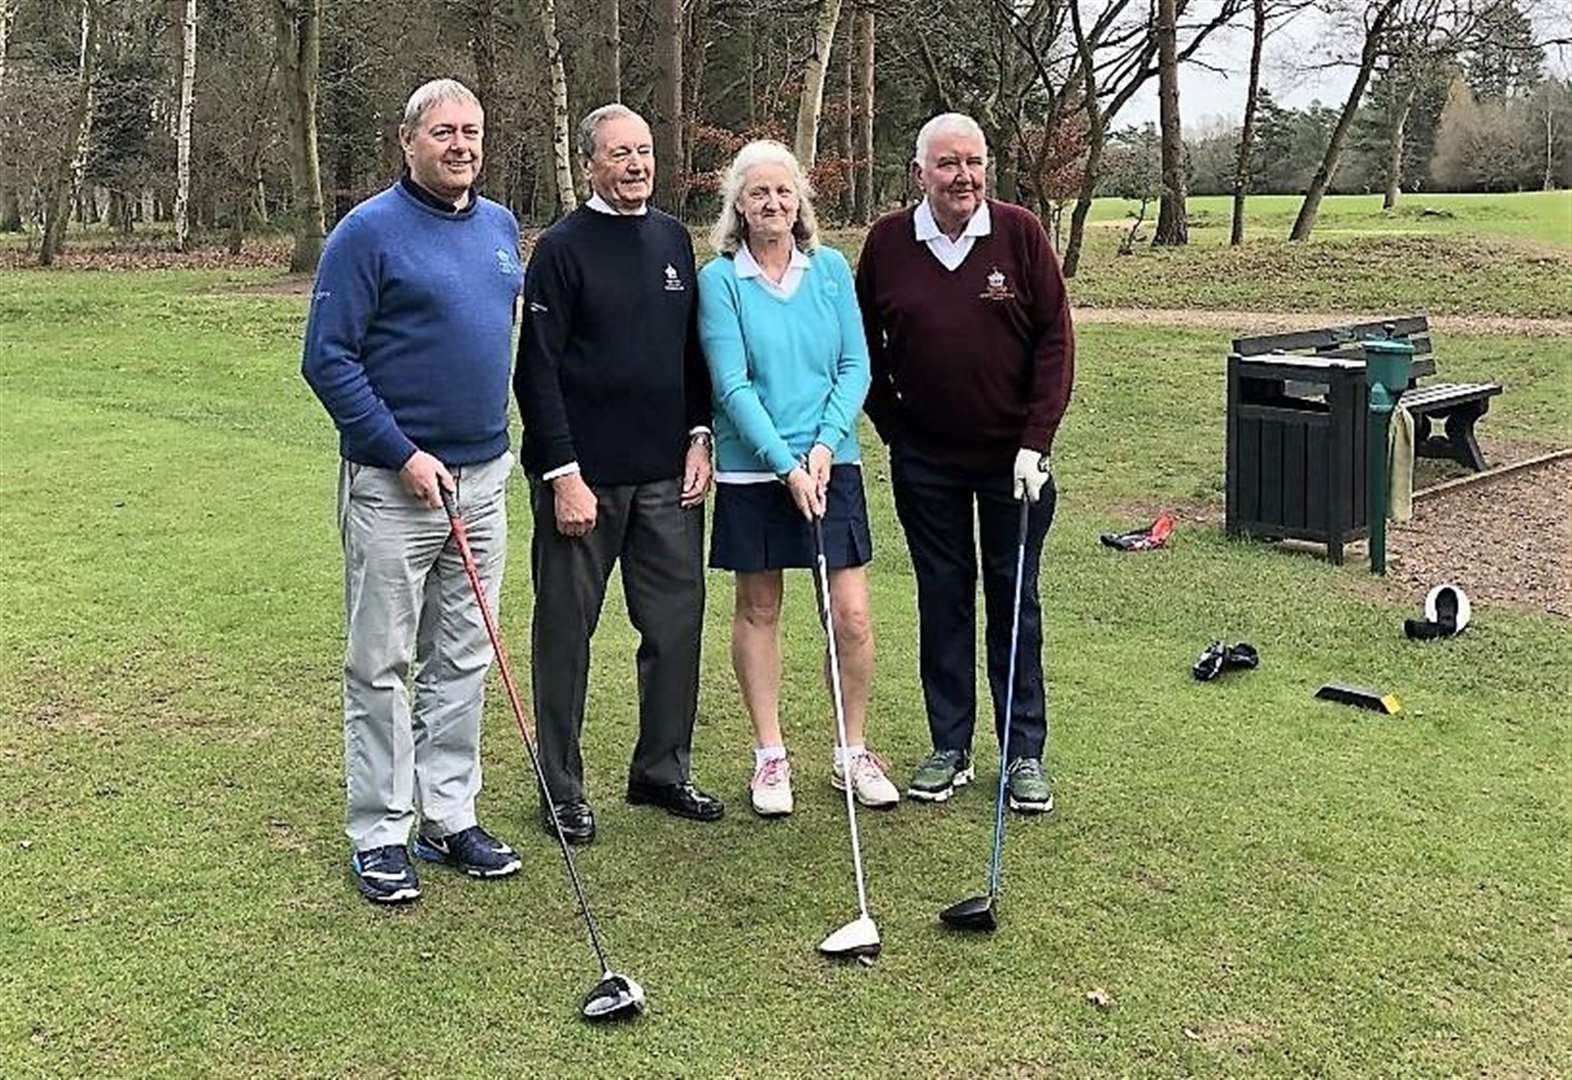 Chris Boughton's Golf Column: New captains hit off the tee for 2019